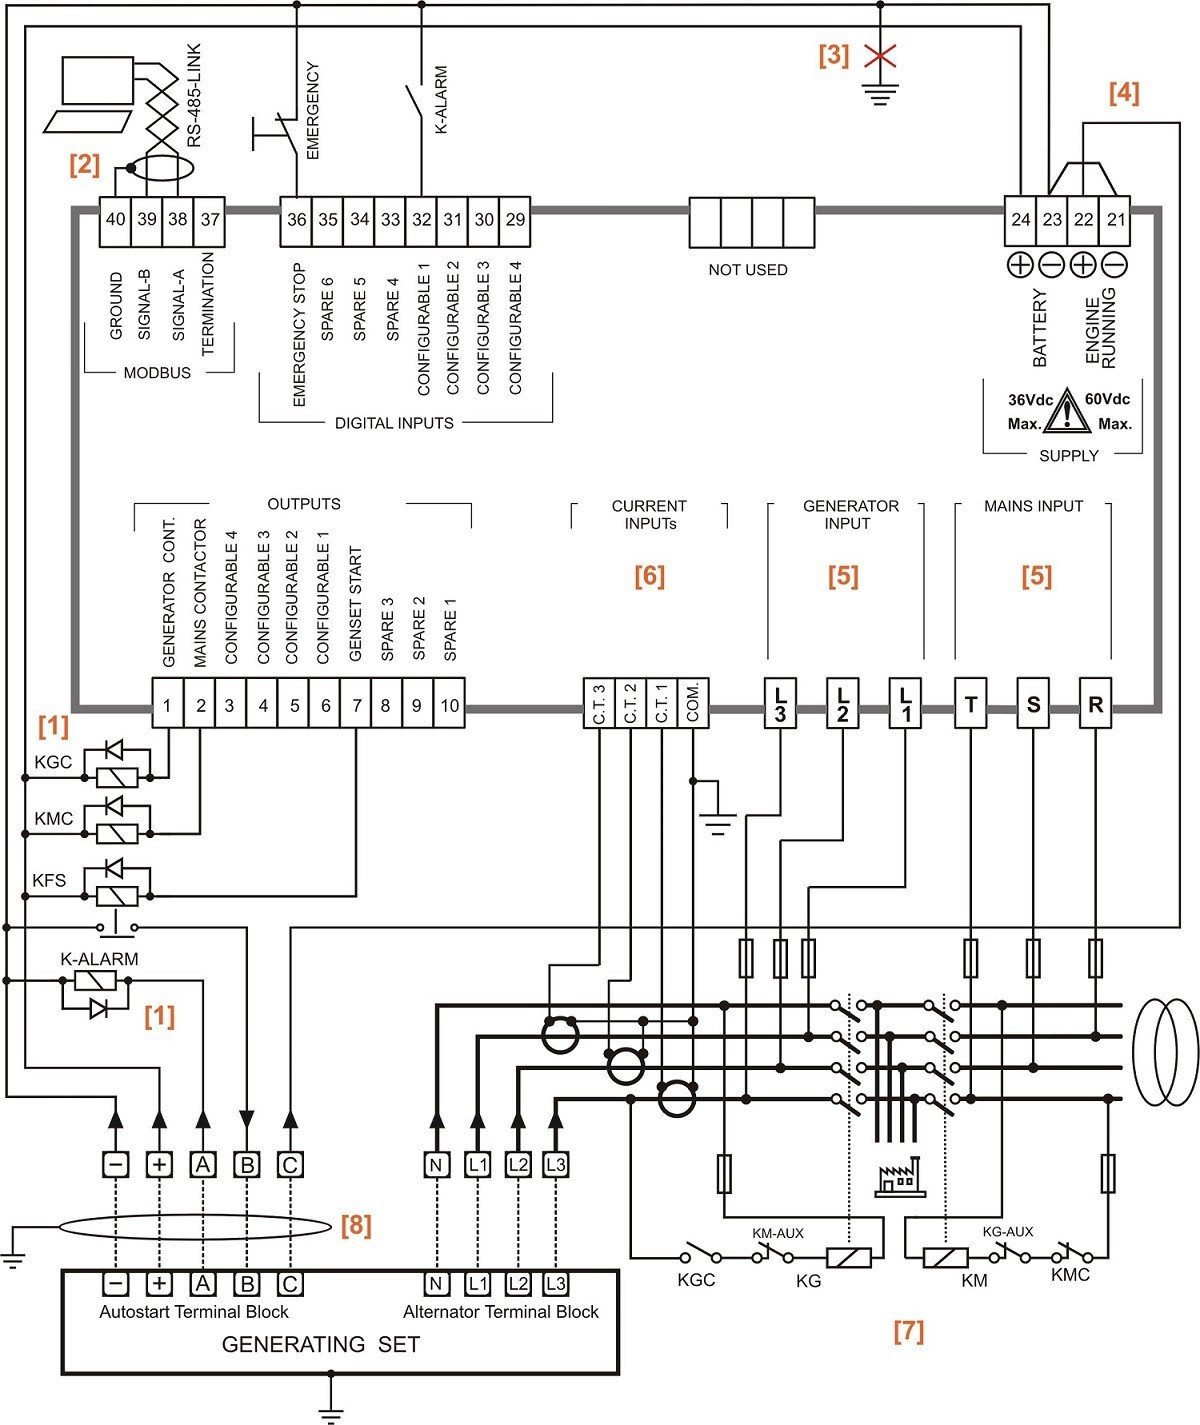 3 pole transfer switch wiring diagram Download-transfer switch wiring diagrams free wiring diagram wire rh linxglobal co 14-l